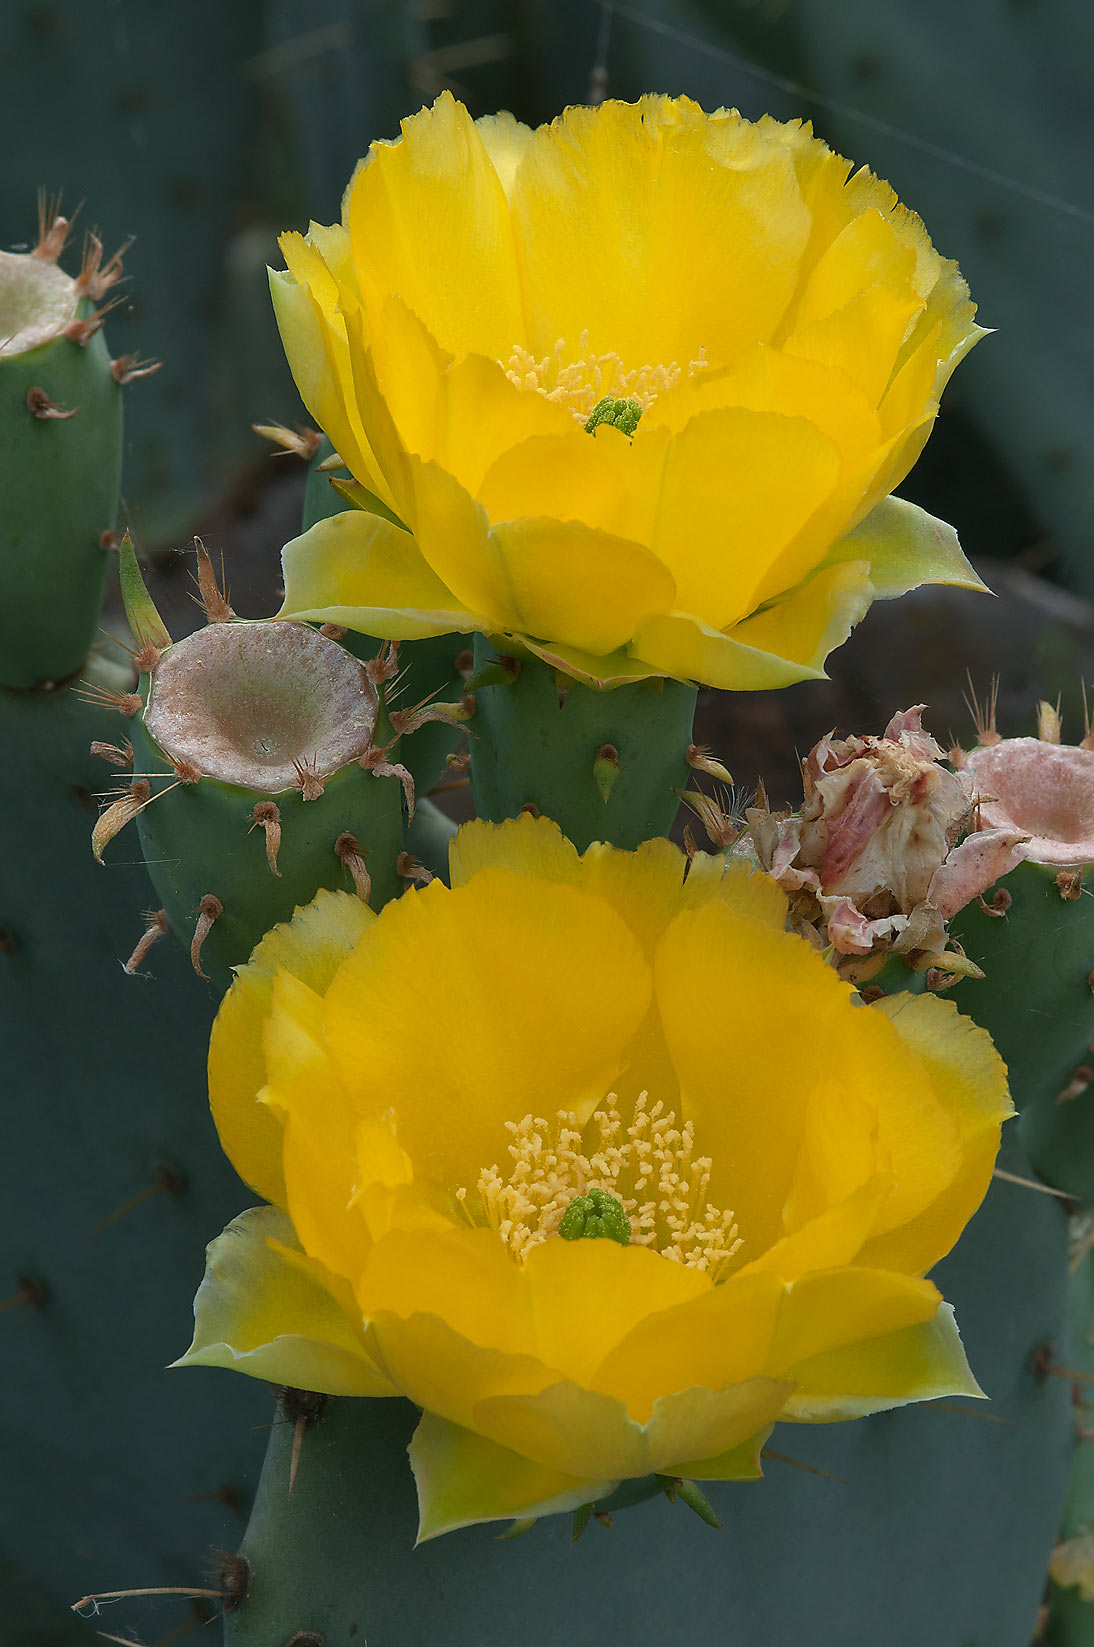 Yellow flowers of prickly pears (Opuntia) in...of Lake Somerville State Park, Texas